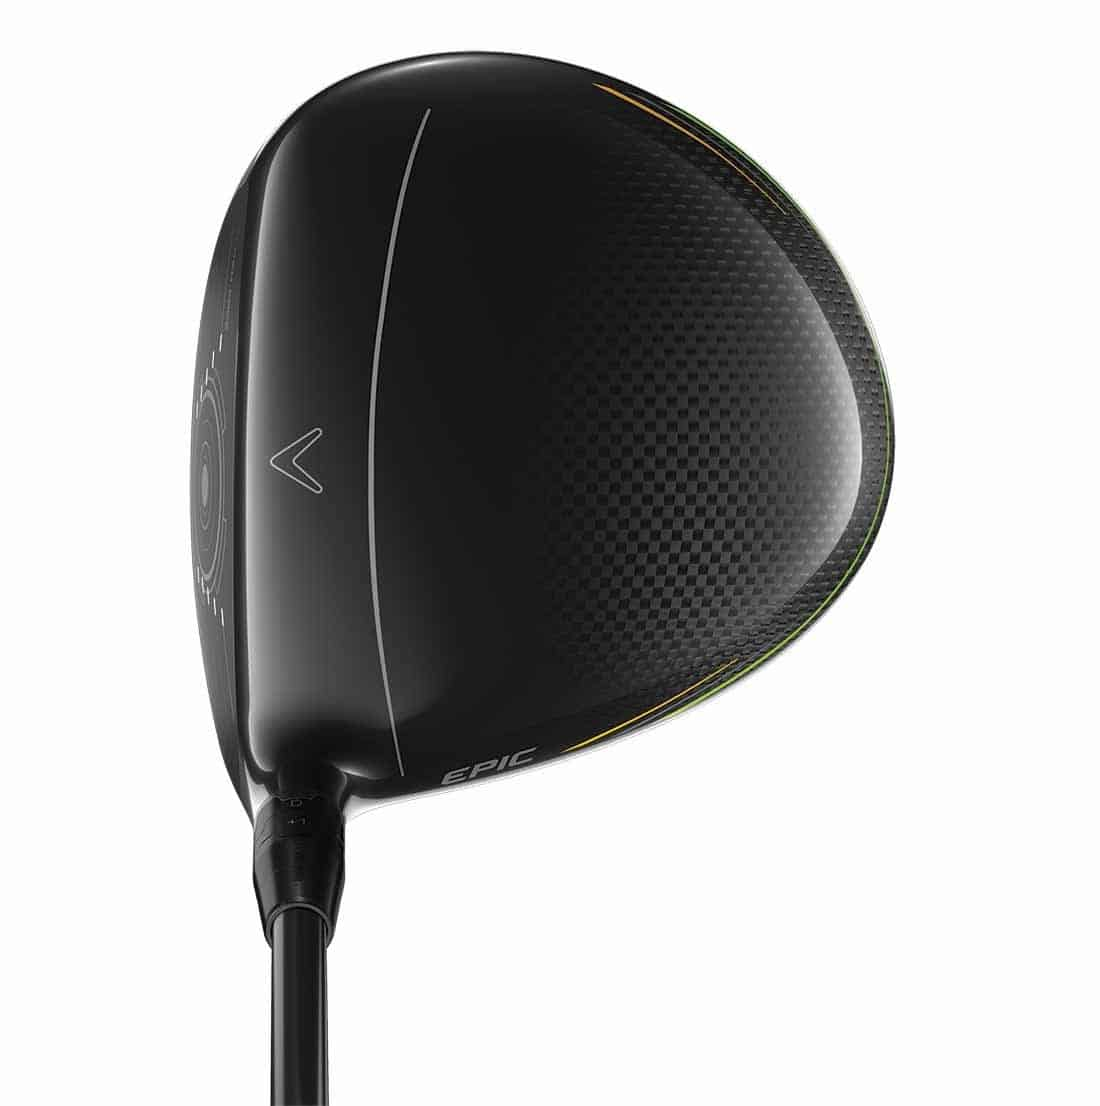 Cleveland Power And Performance >> CALLAWAY EPIC FLASH DRIVER - HOTGOLF